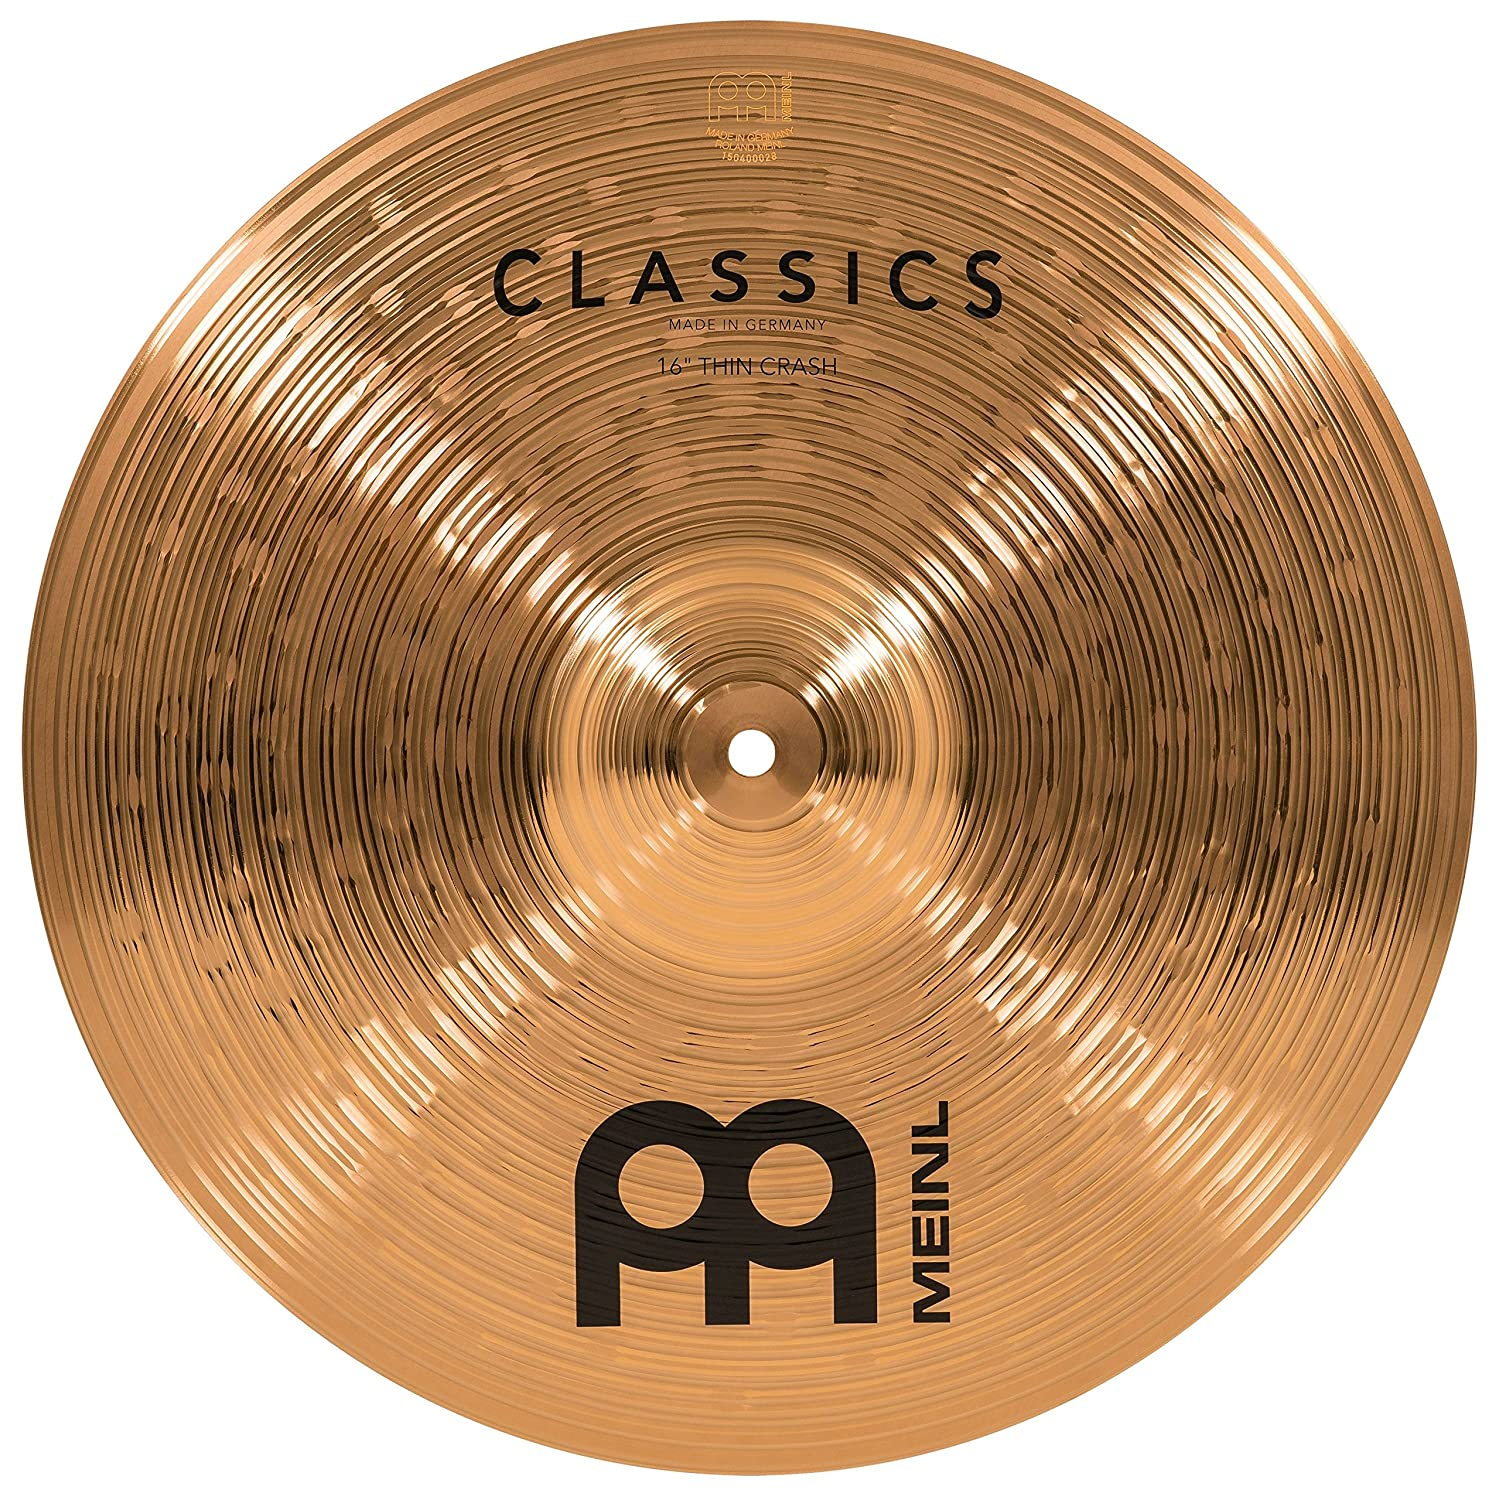 Meinl 16 Thin Crash Cymbal C16TC Classics Traditional 2-YEAR WARRANTY Made in Germany